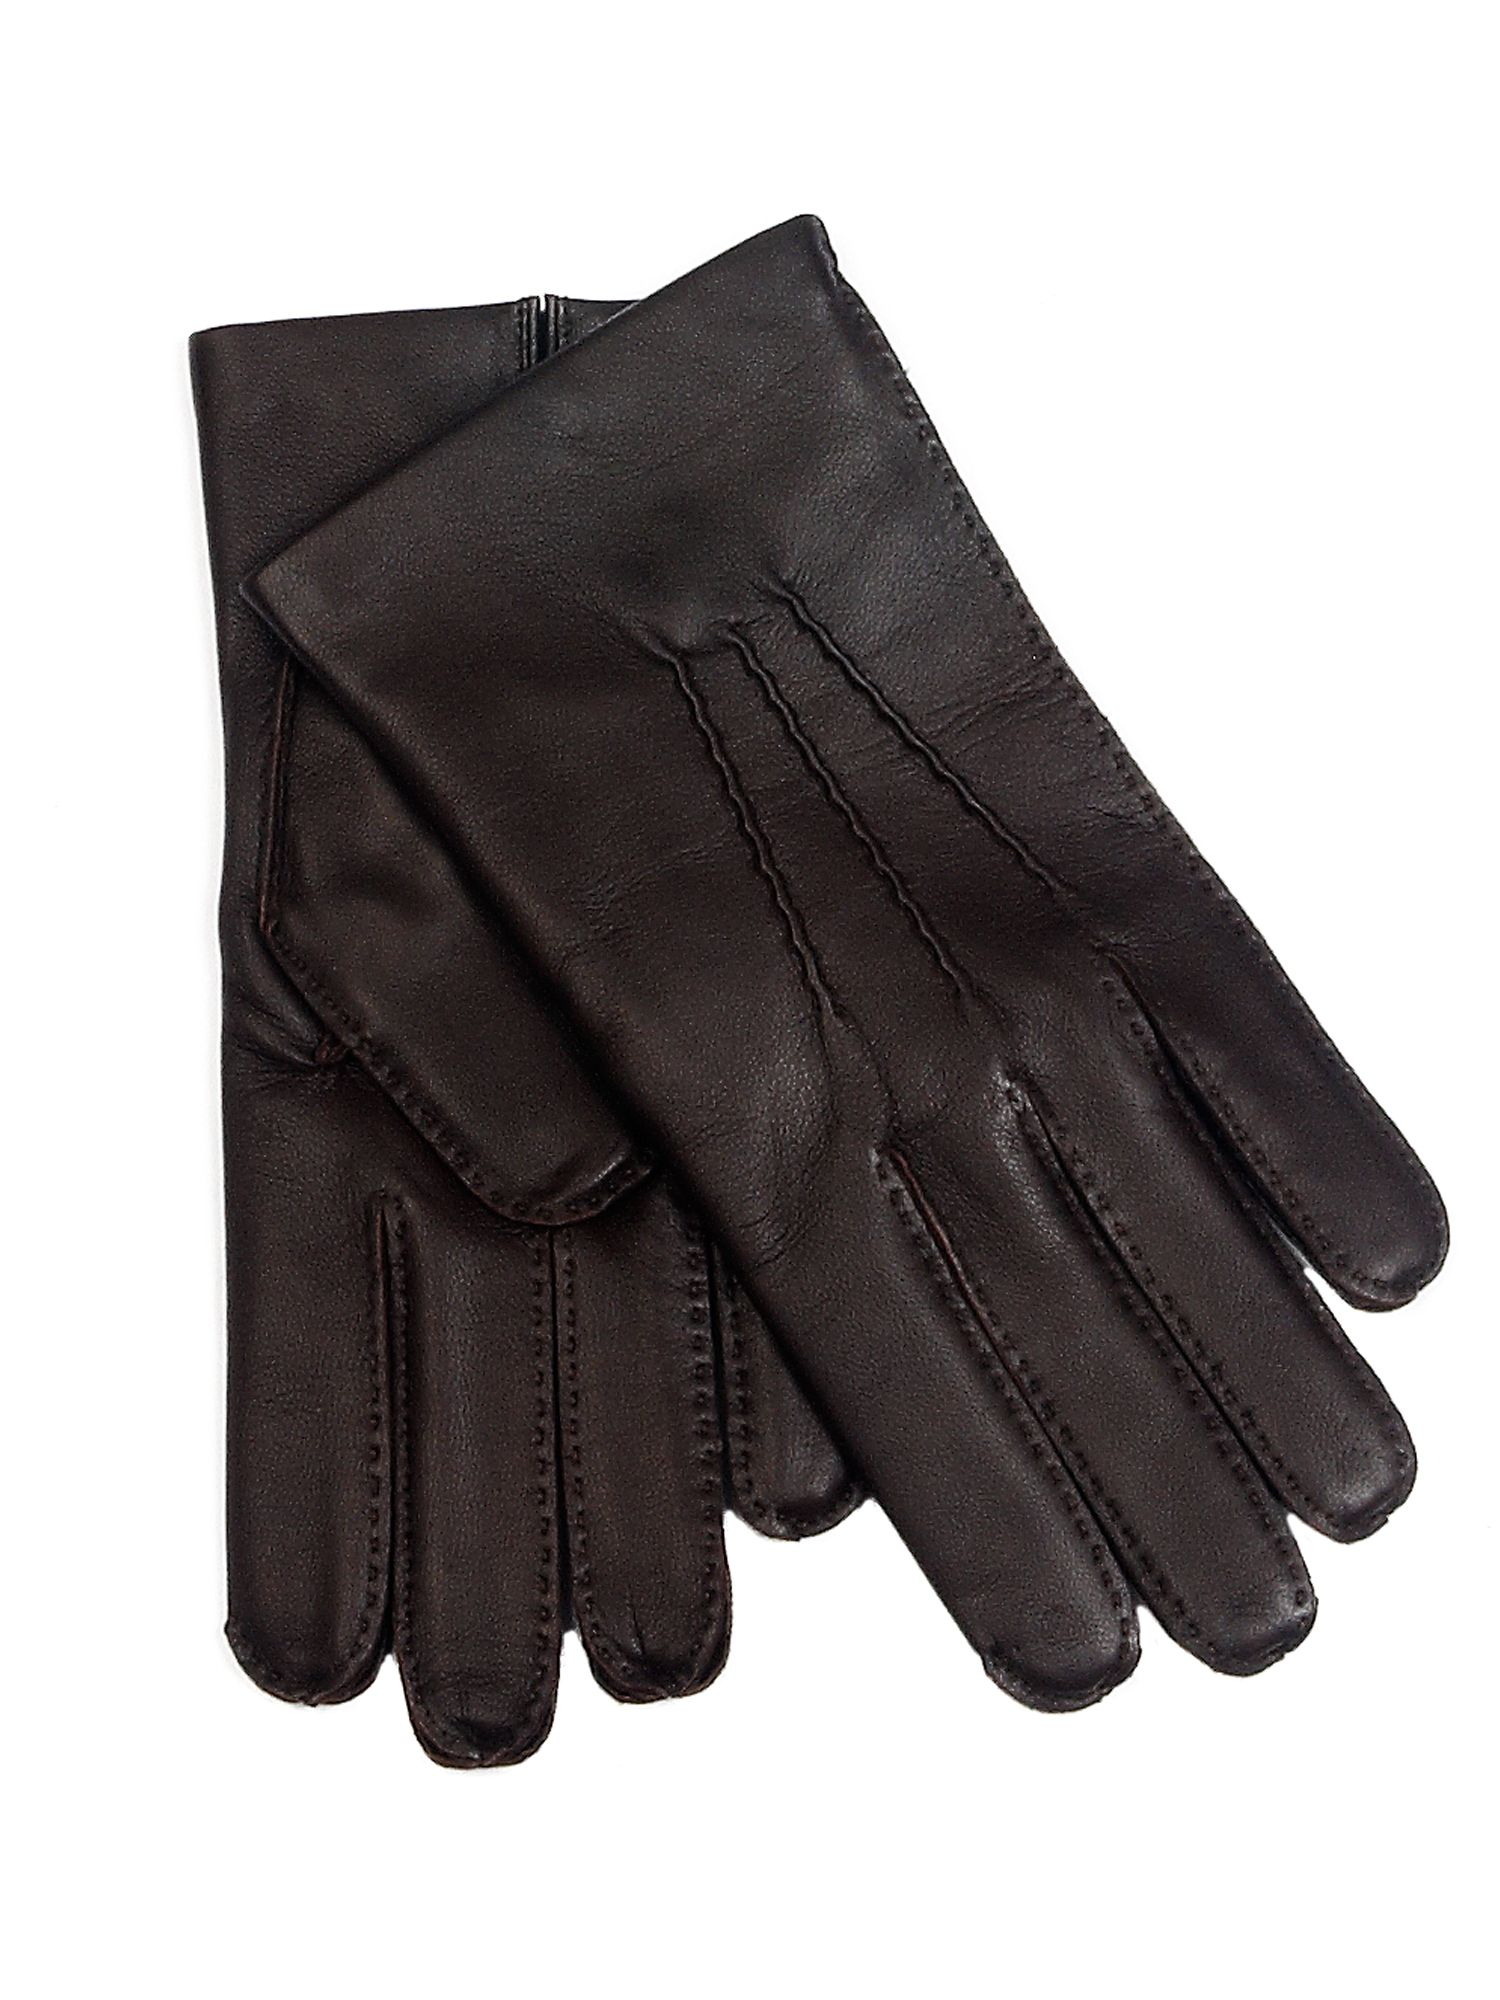 Black leather gloves on sale - Gallery